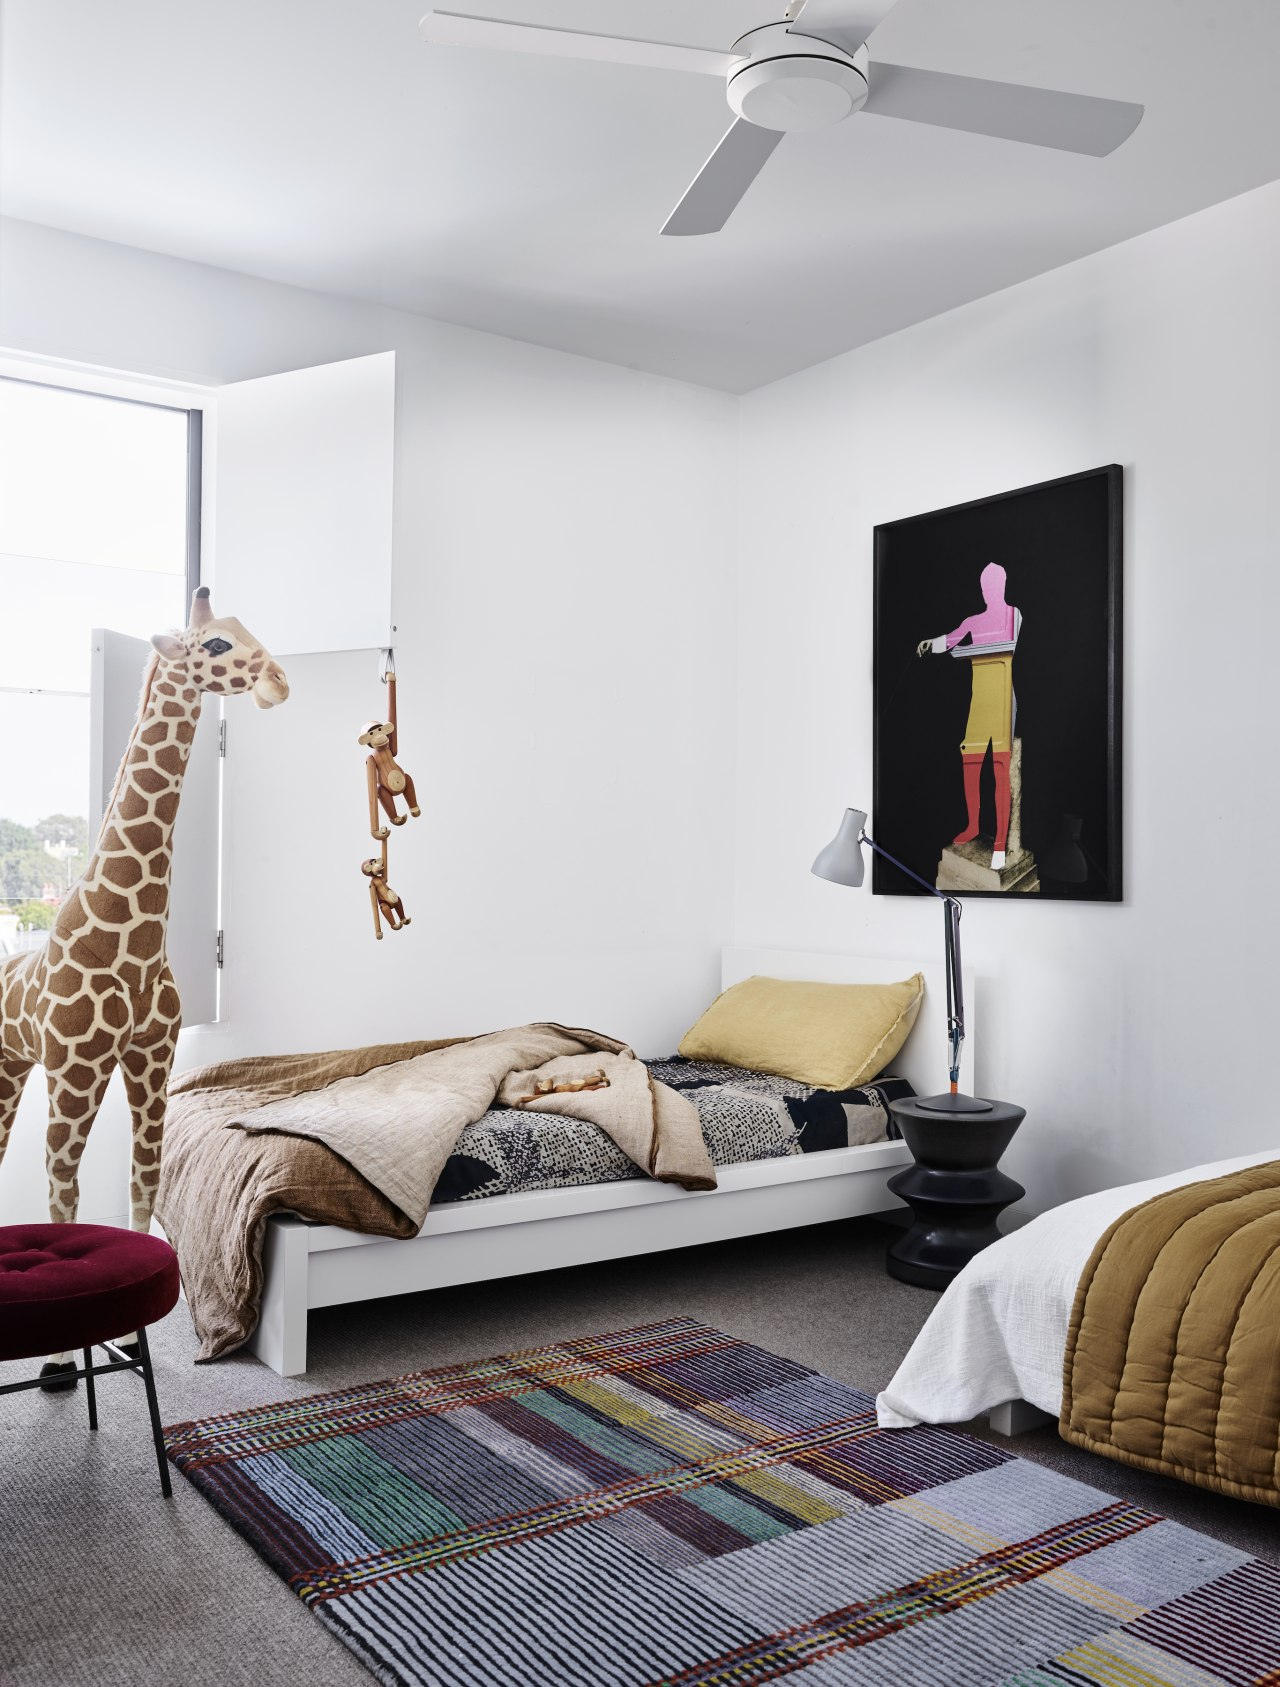 Even a real giraffe might not have to